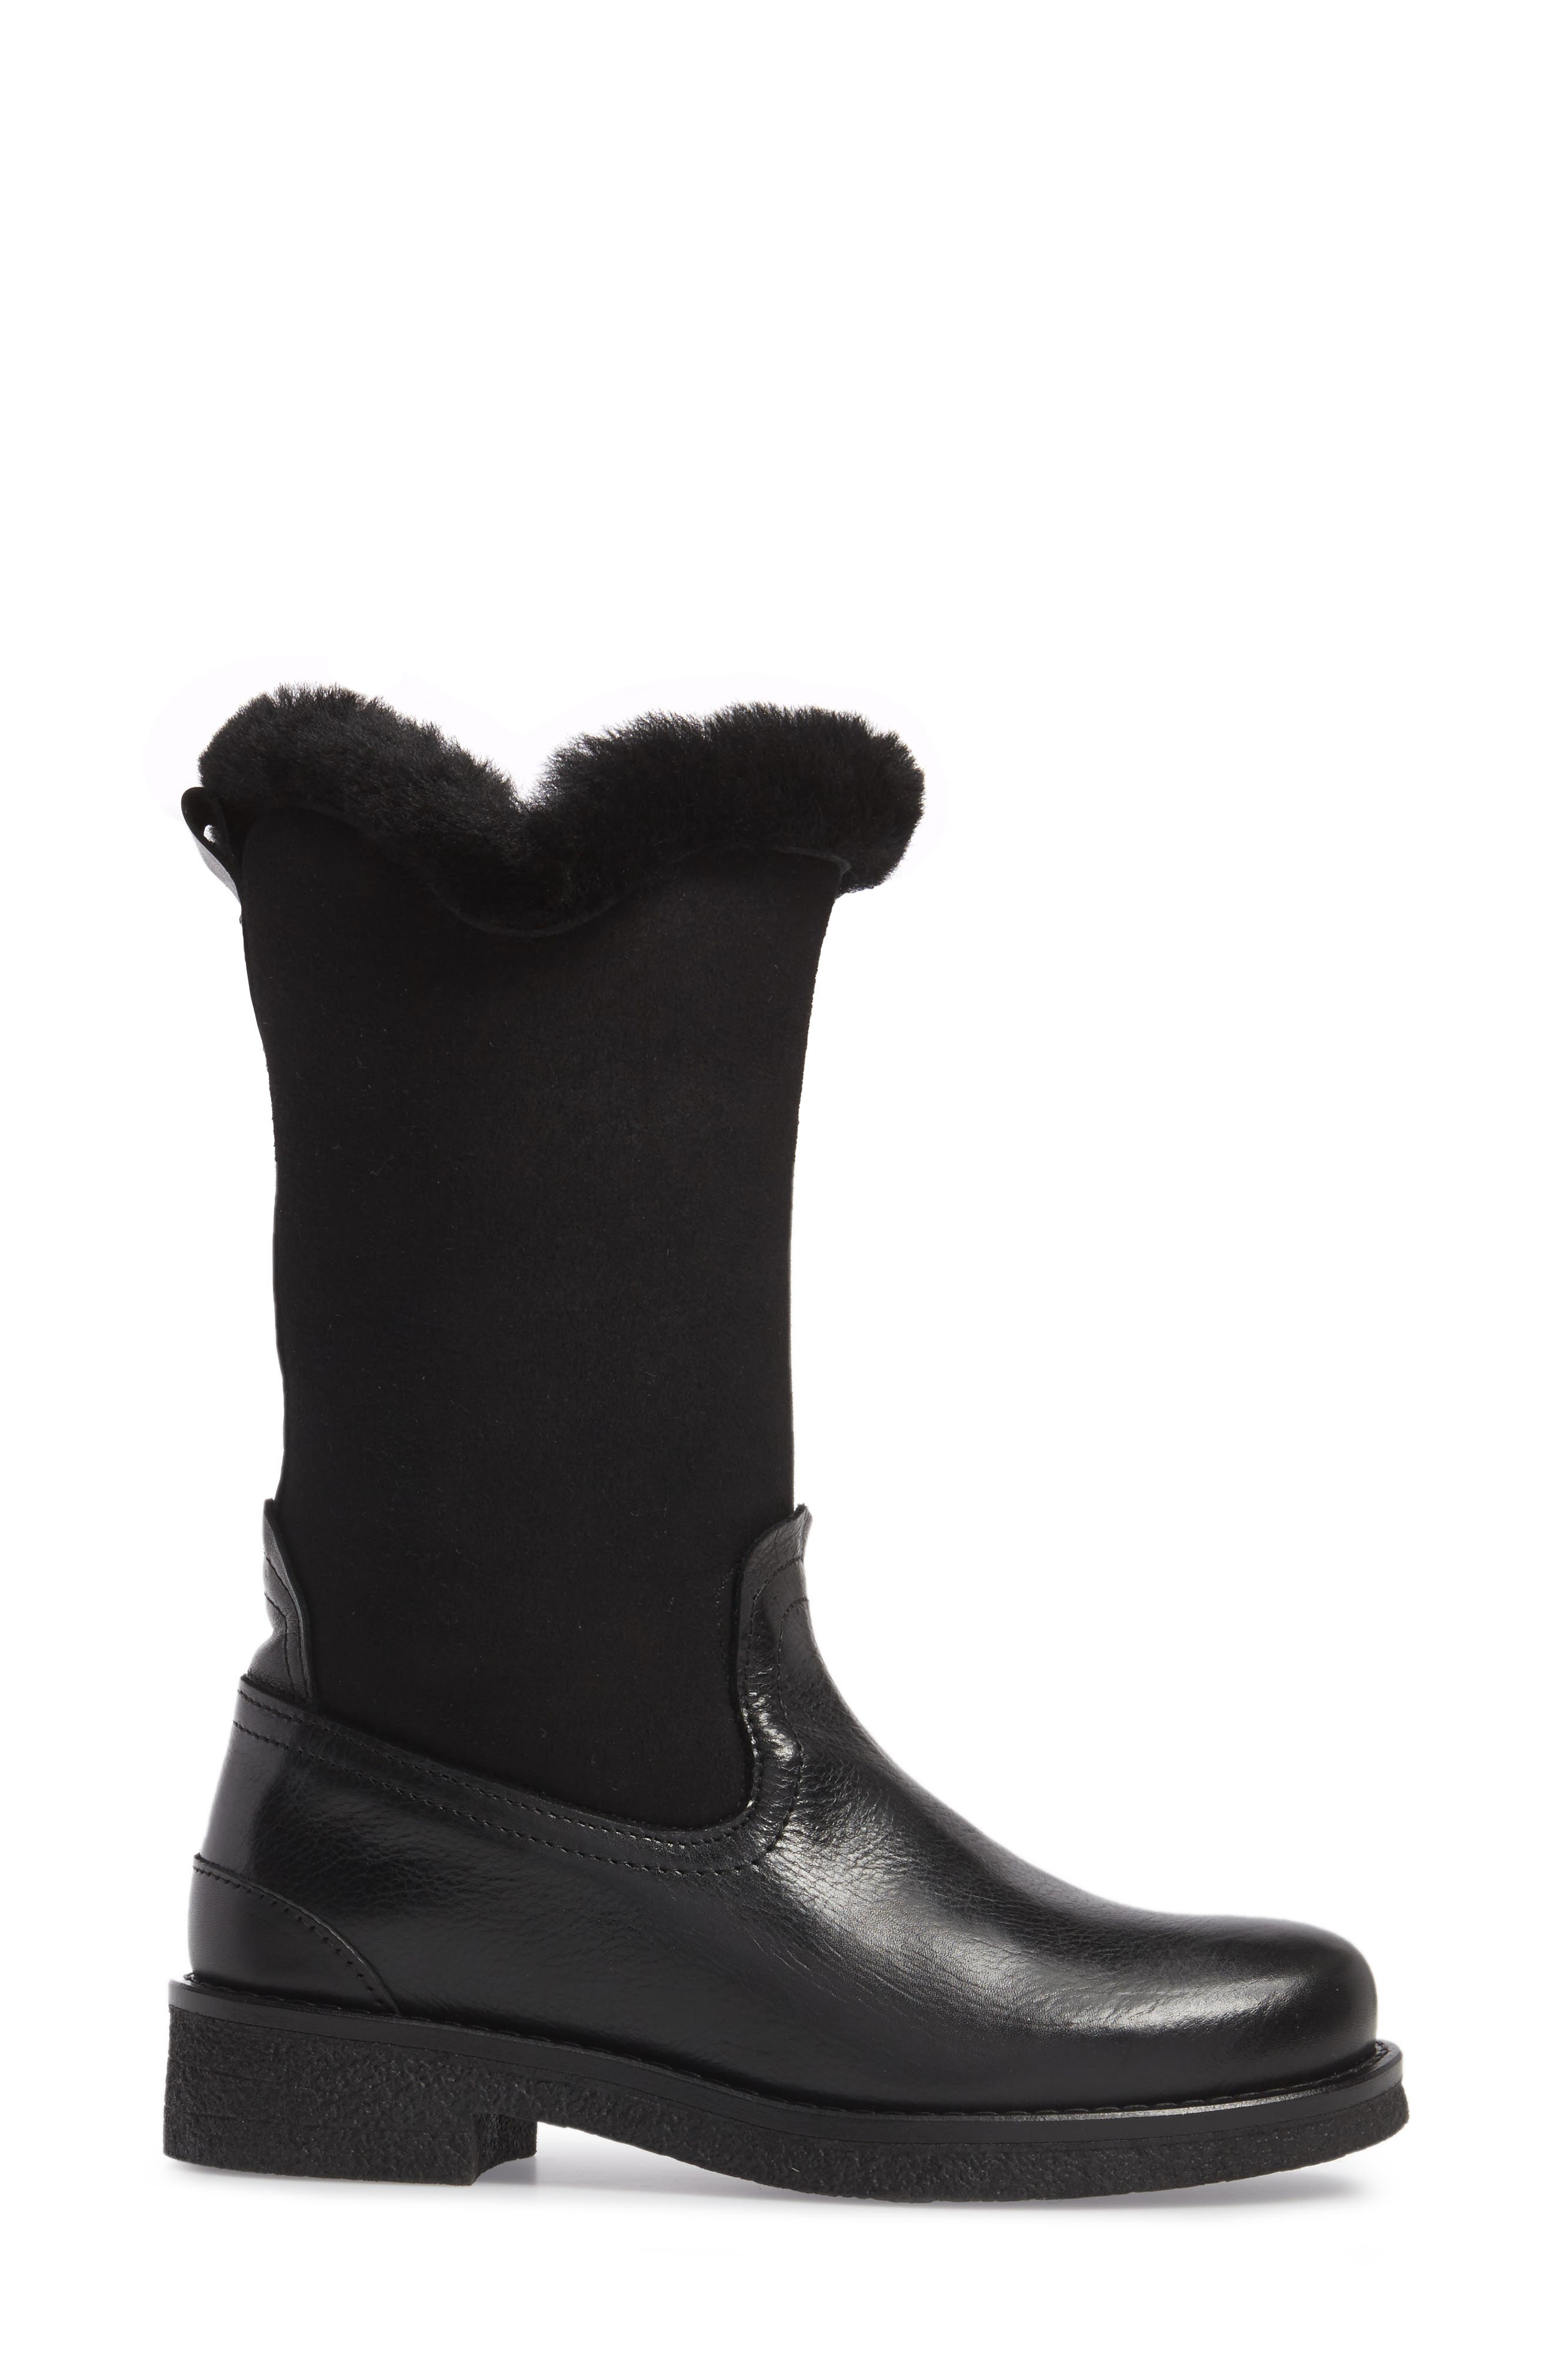 Amarillo Waterproof Insulated Snow Boot,                             Alternate thumbnail 3, color,                             Black Fur Leather